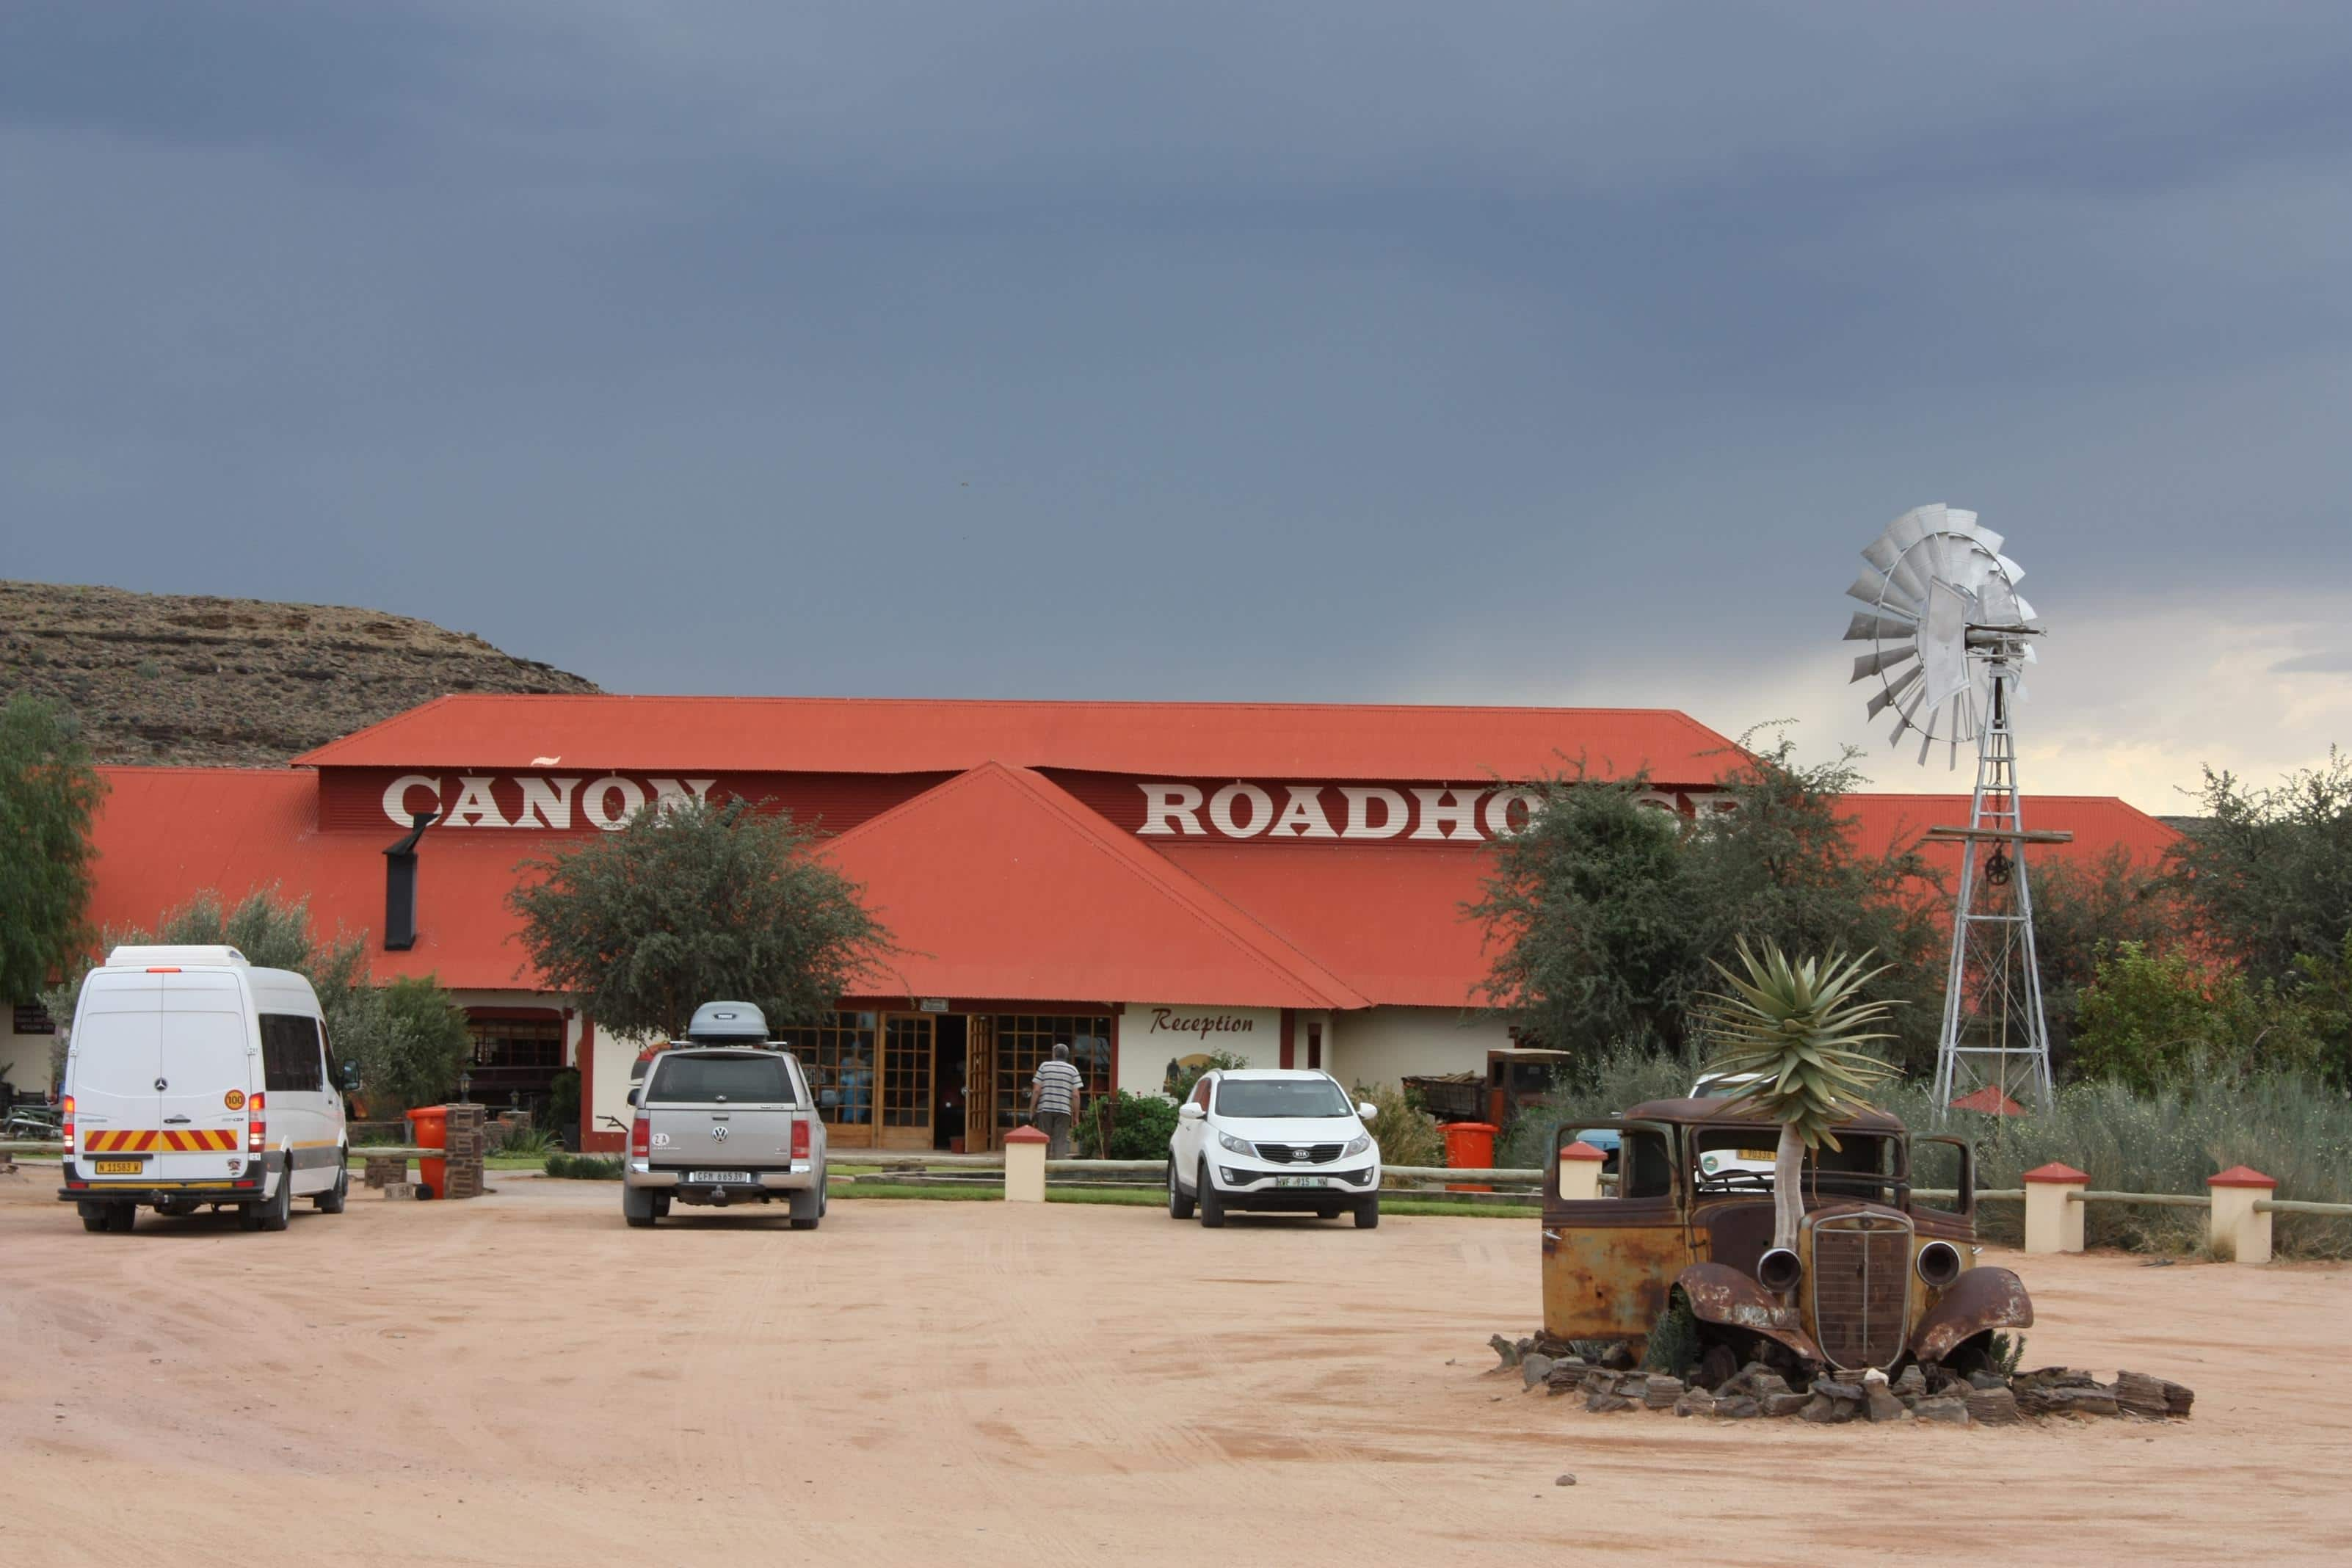 Canon Roadhouse